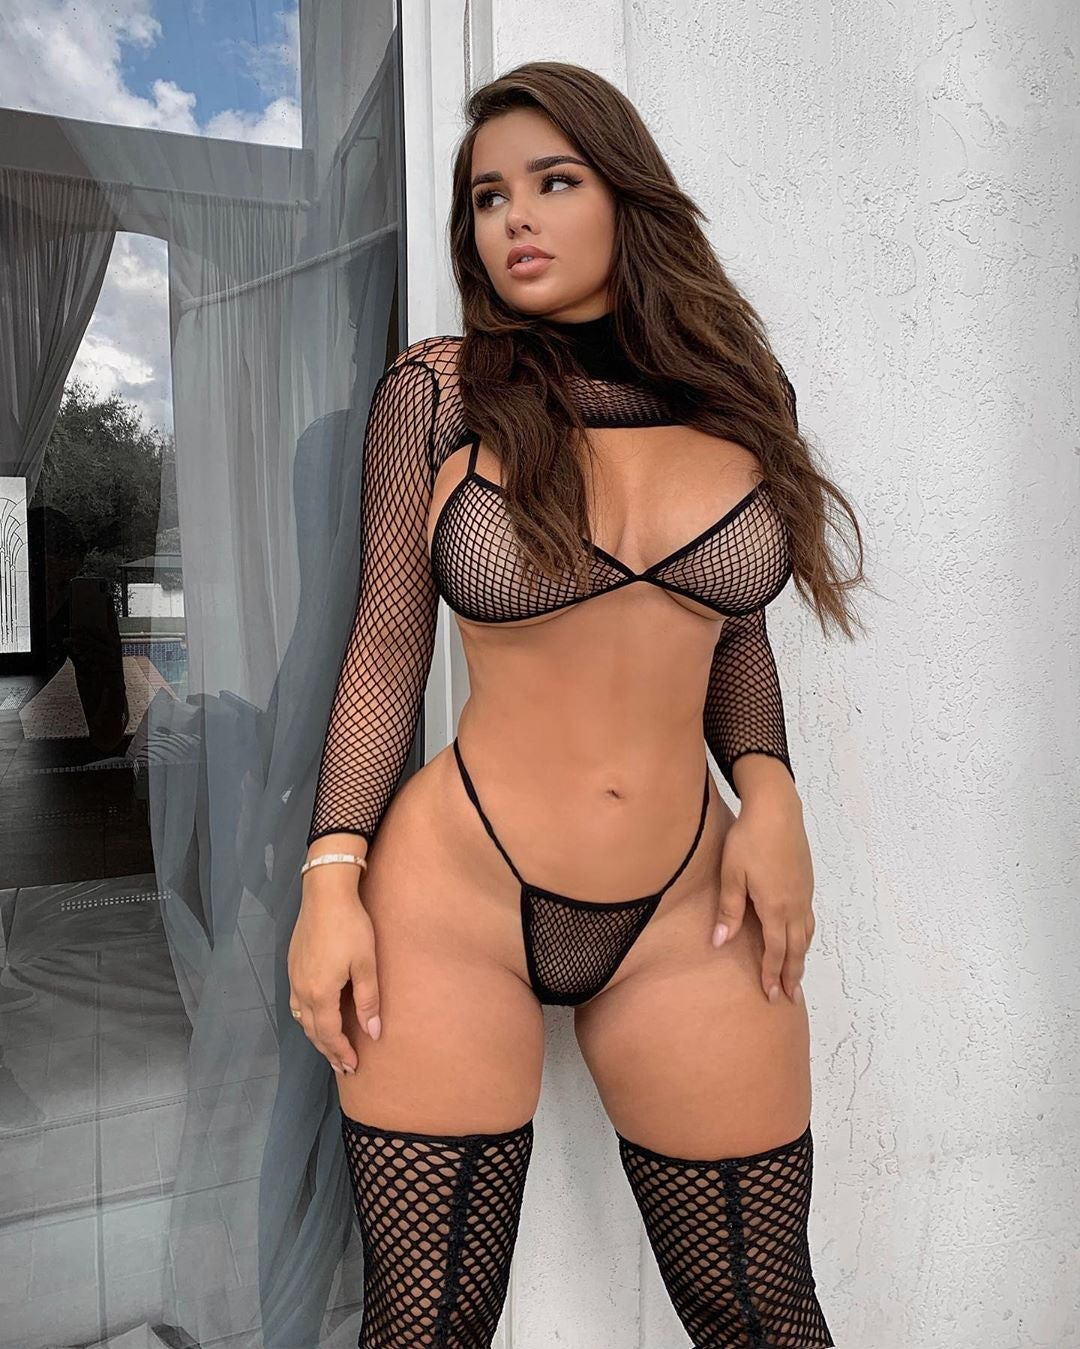 best squirt compilation mobile porno videos movies VioletStarr NinaNorth NaughtyAmerica Latina Brunette Teen Ff Boobs Breasts Tits Shaved